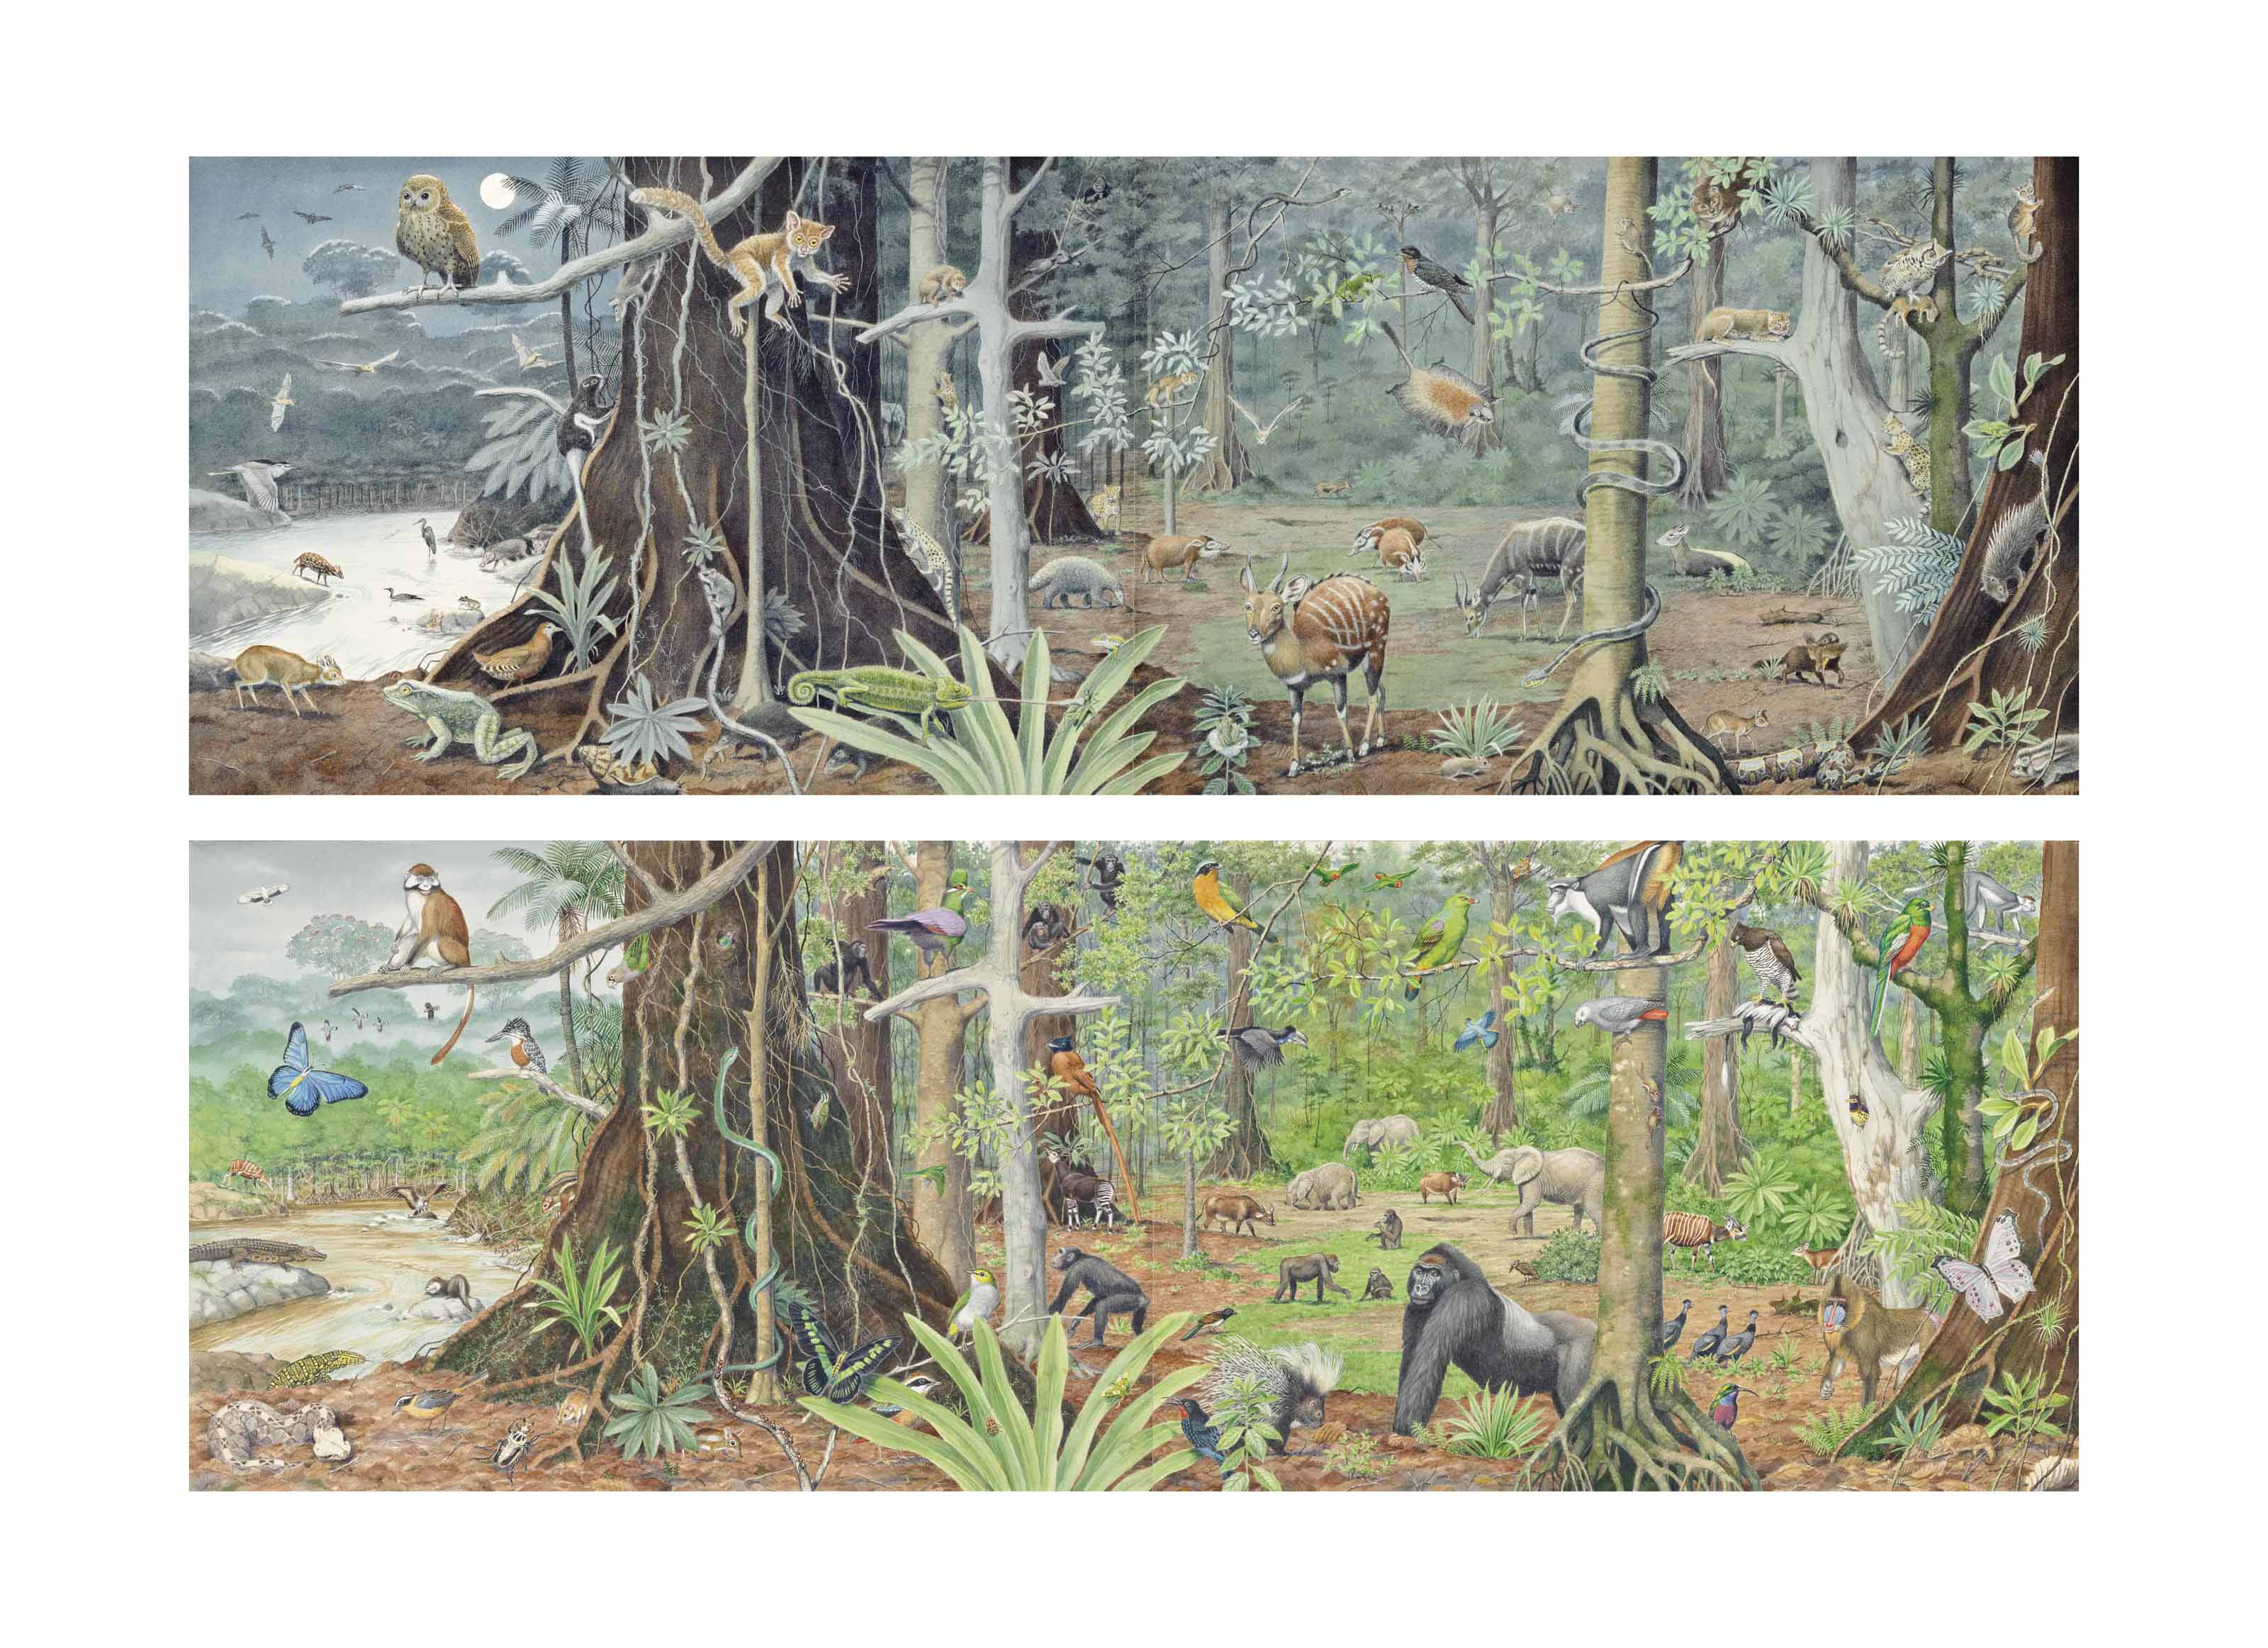 African Jungle: Night and Day - two diptychs